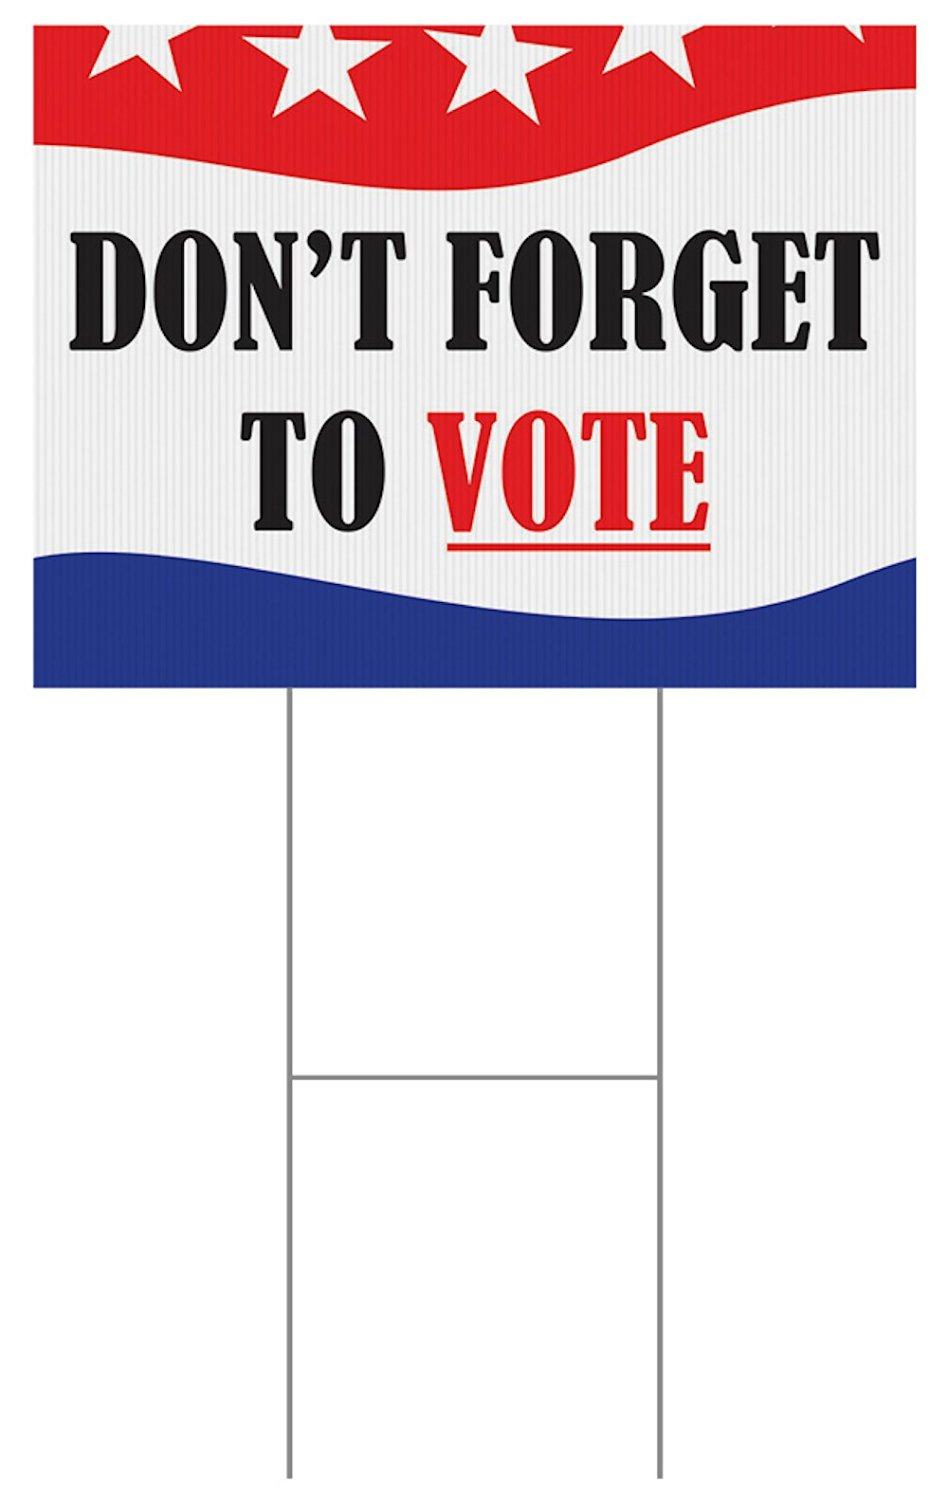 Custom Product Solutions 18 x 24 Inches Full Color Yard Sign, Don't Forget to Vote, Red/White/Blue (ZYS02IAQ)